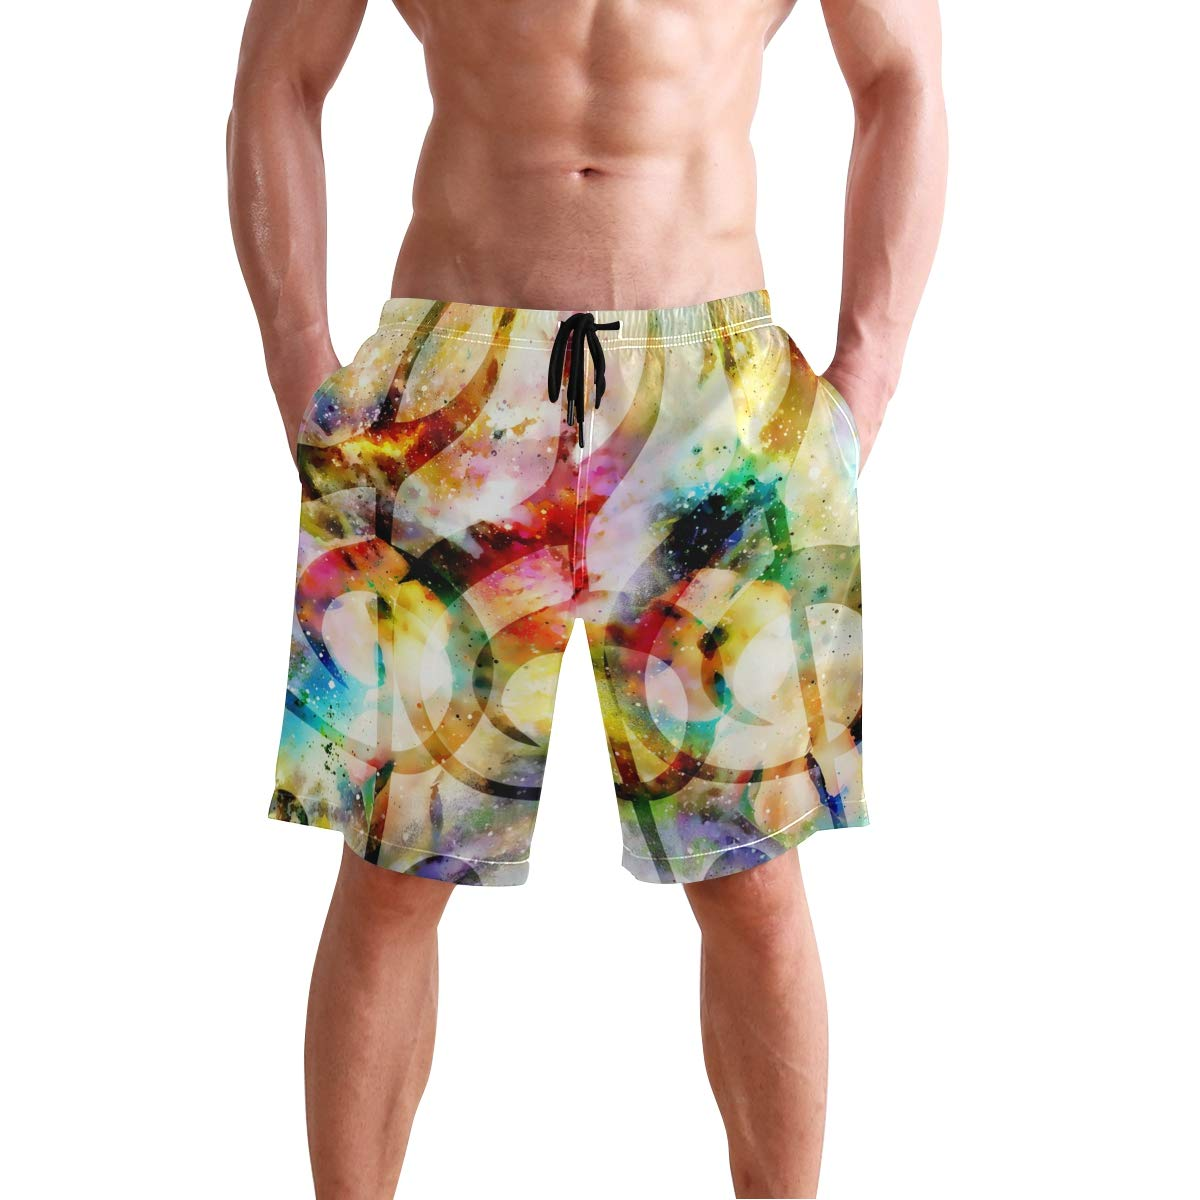 AUUXVA KUWT Mens Swim Trunks Colorful Galaxy Music Note Quick Dry Beach Shorts Summer Surf Board Shorts